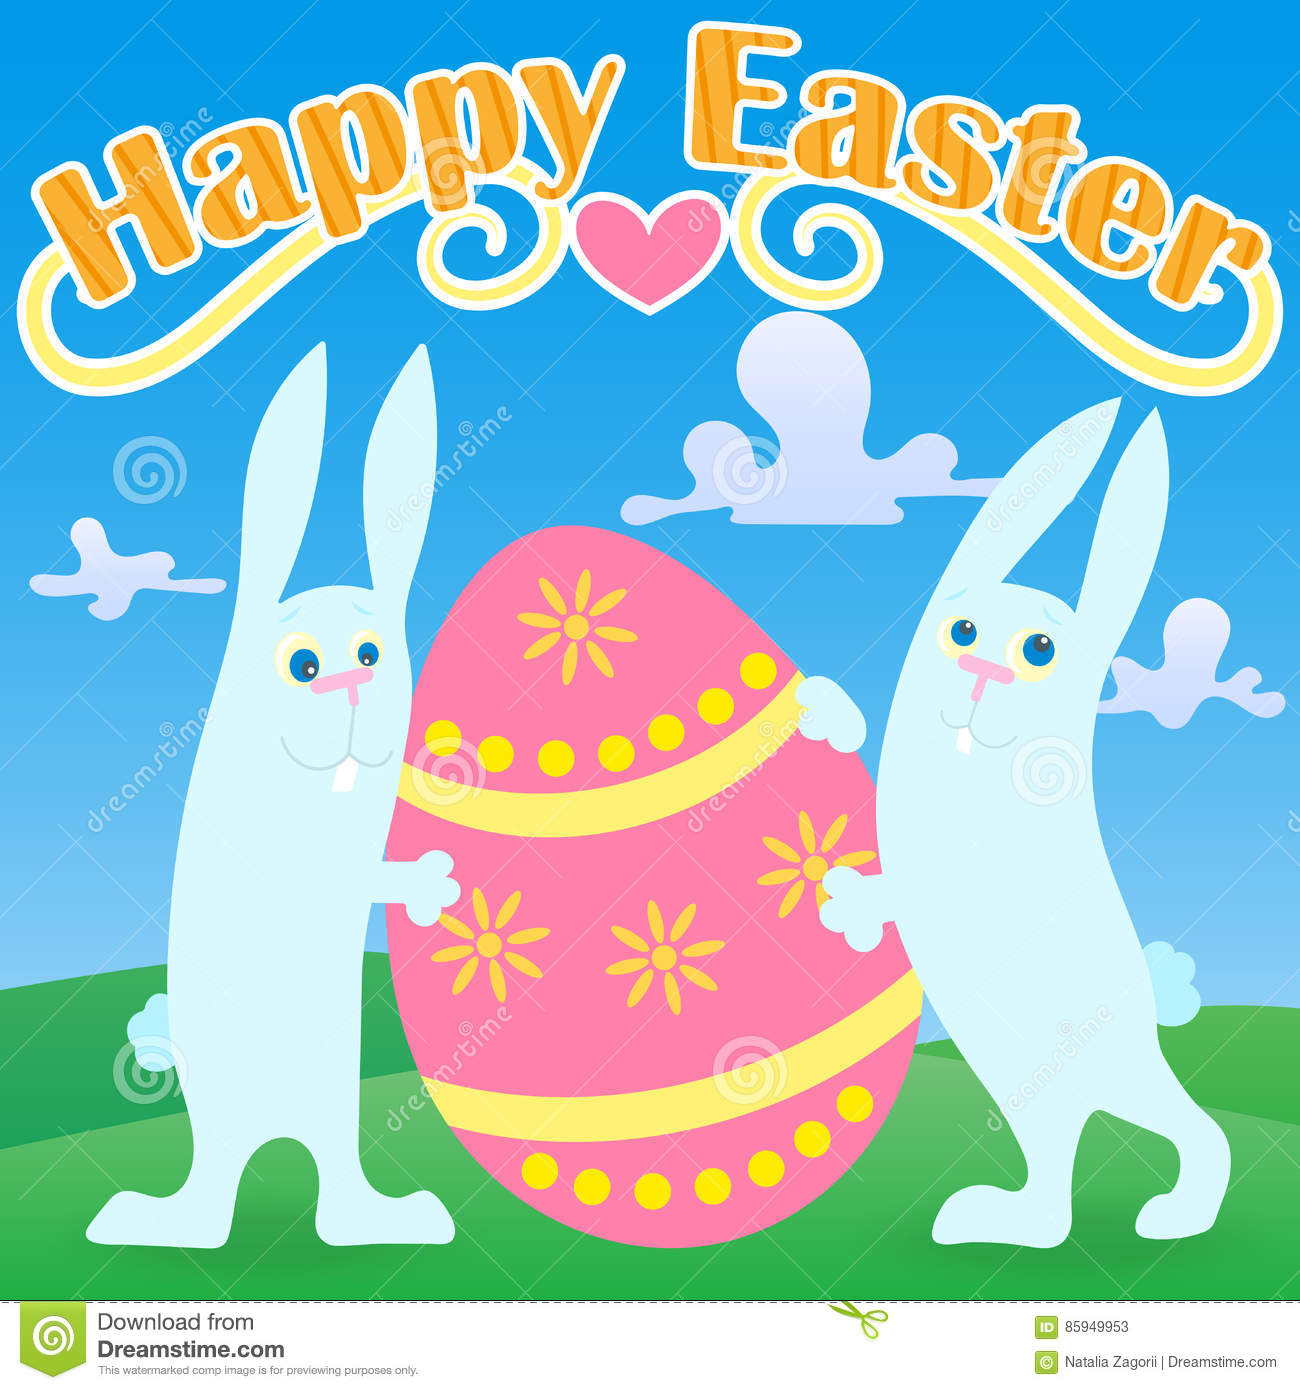 Greeting Card To The Day Of Easter Two Funny Cartoon Easter Bunny